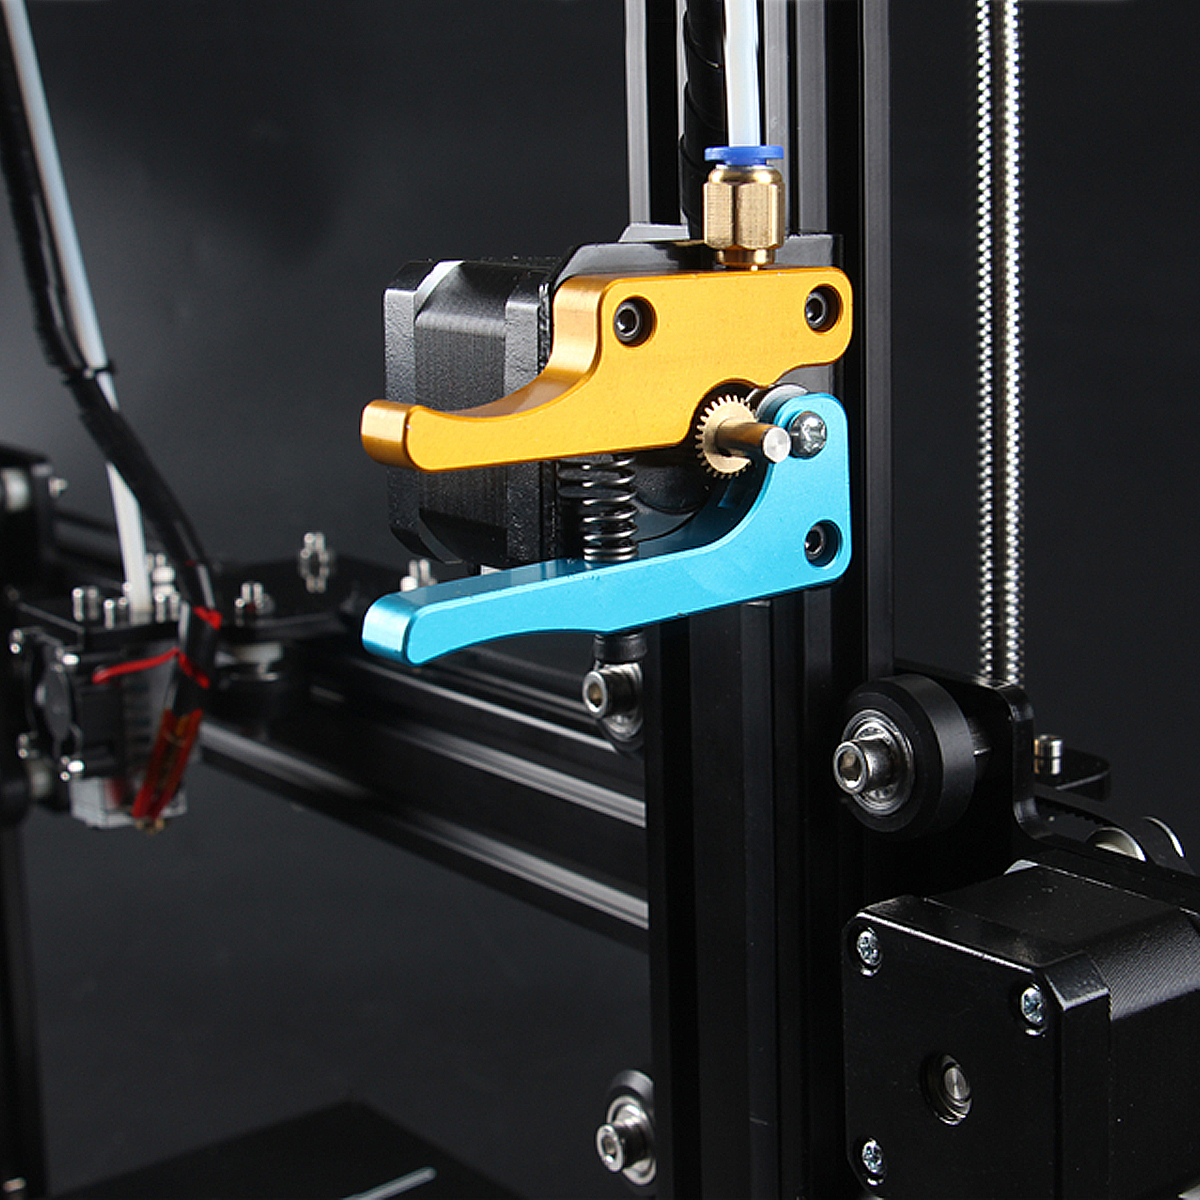 TEVO Tarantula Dual Extruder Upgrade Kits For 3D Printer With Cooling Fan and 17 Stepper Motor Tarantula Dual Extruder джемпер colambetta